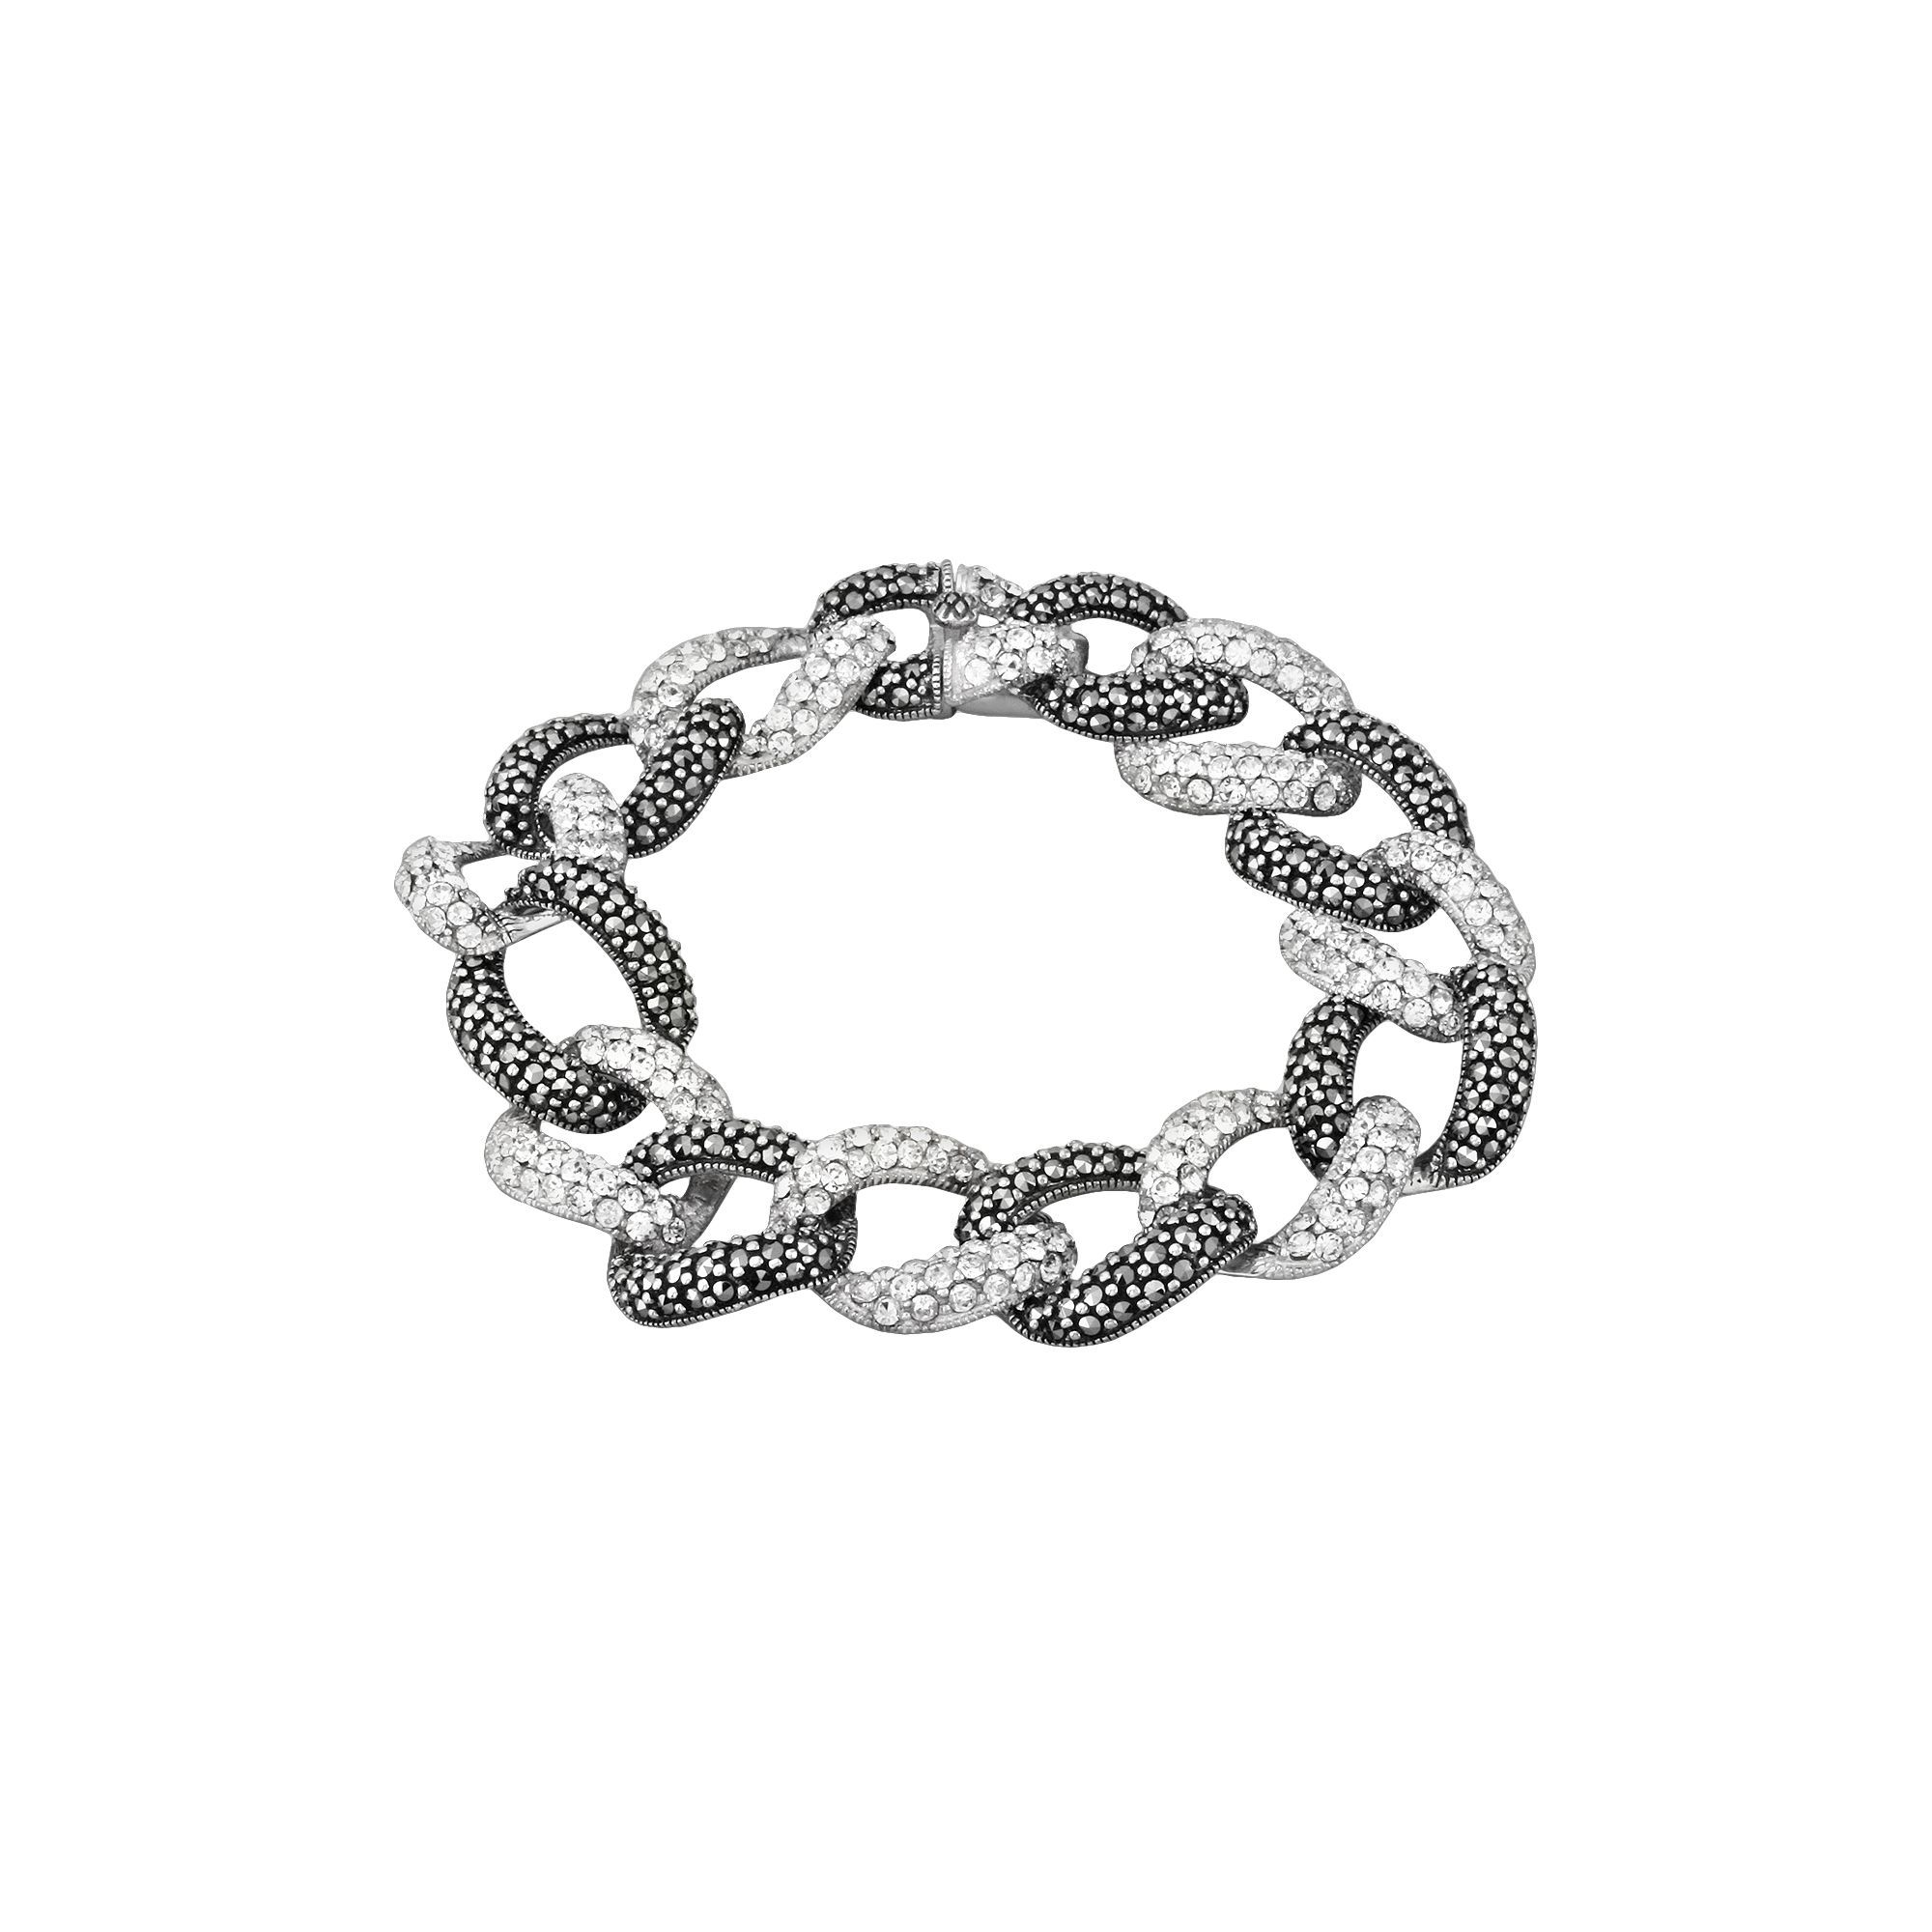 a86754e592ab4 Sterling Silver Marcasite & Simulated Crystal Oval Link Bracelet ...